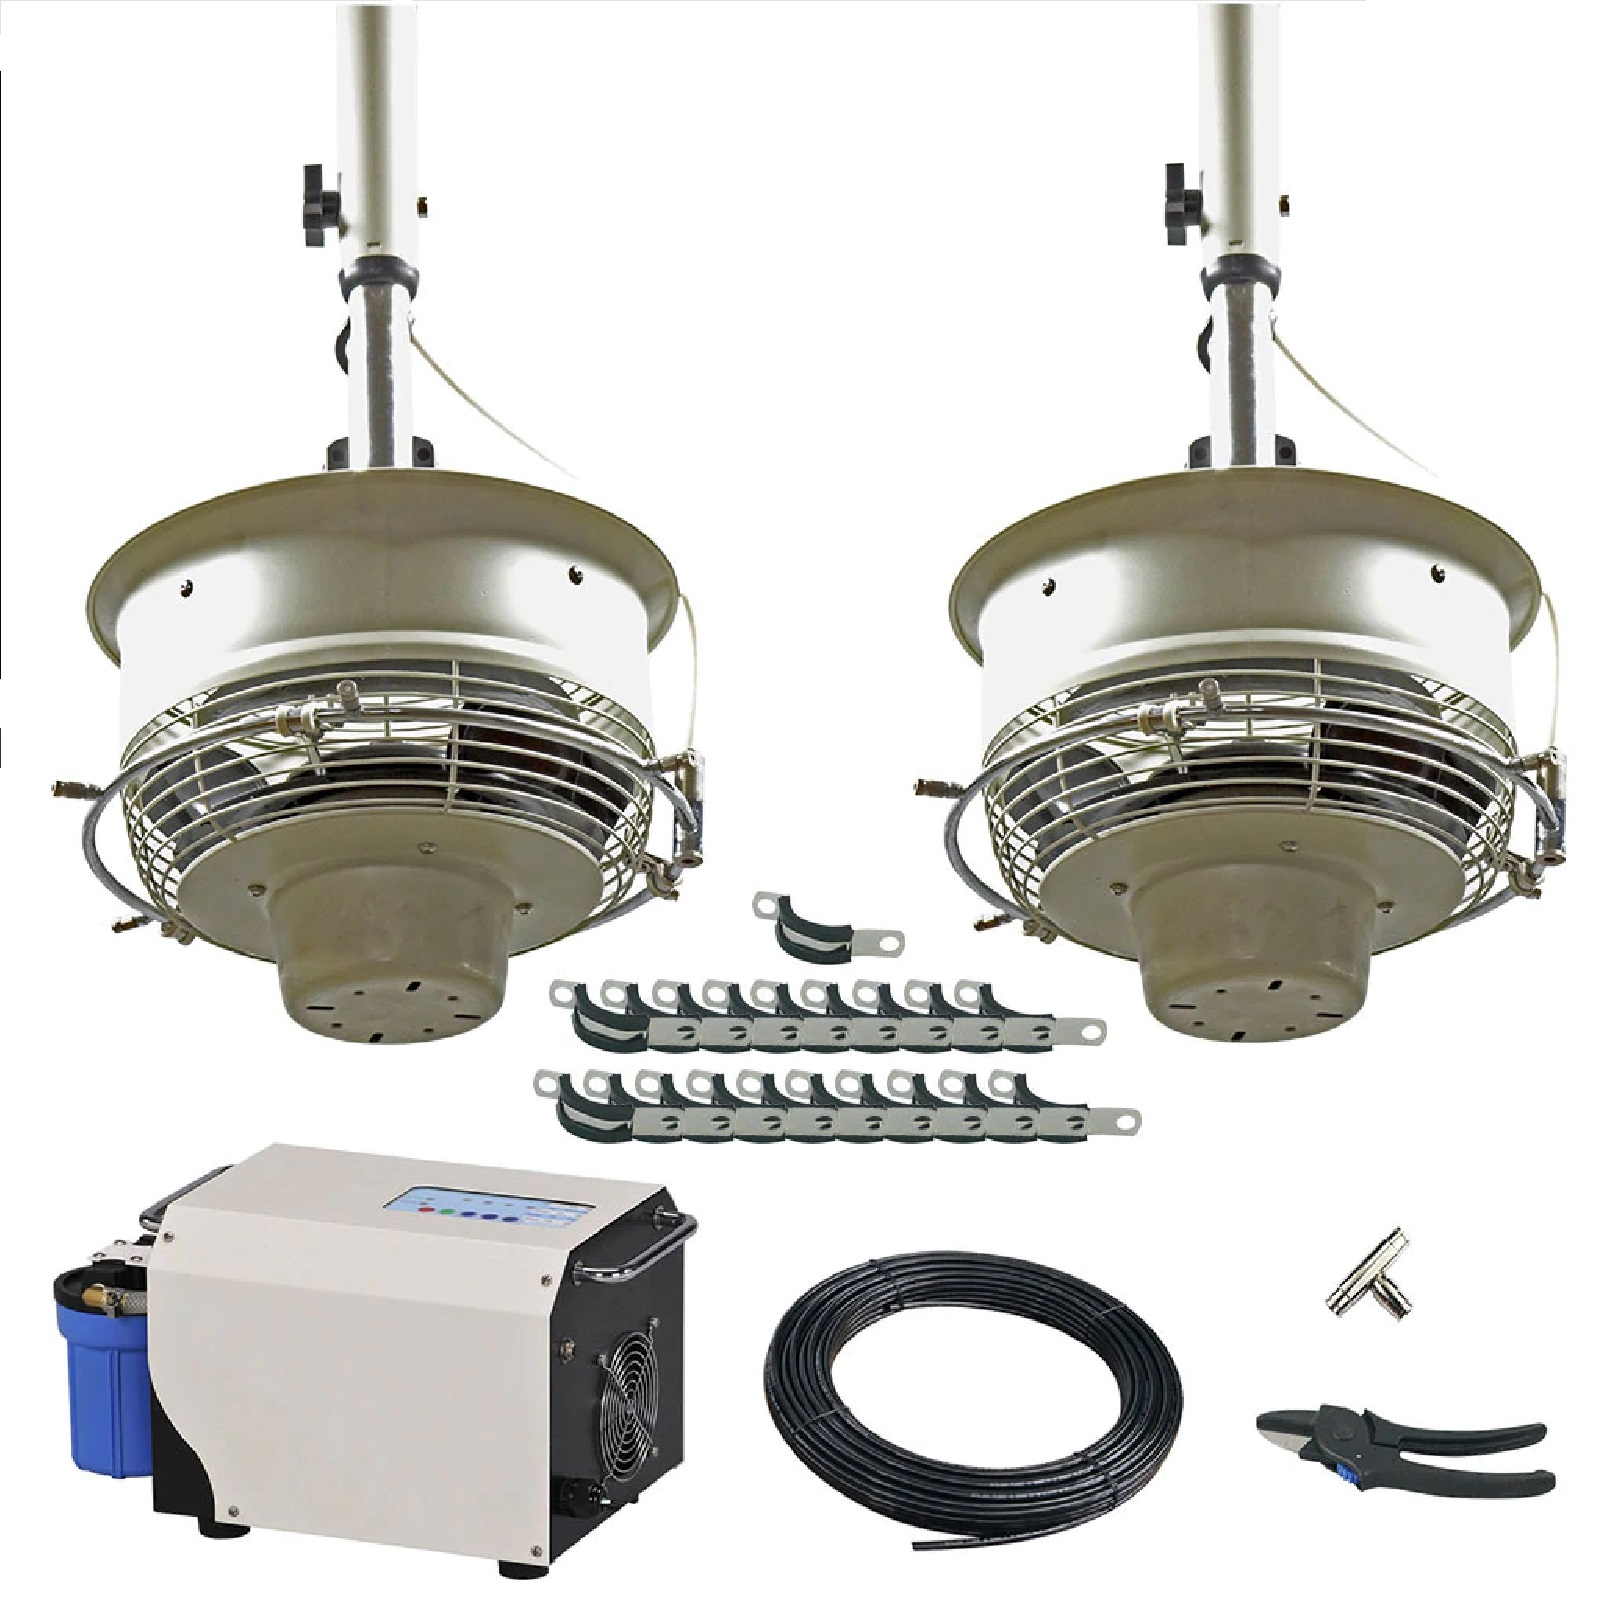 2 Ceiling Mount CentraMist Fans with 15 Nozzle Pump Package White